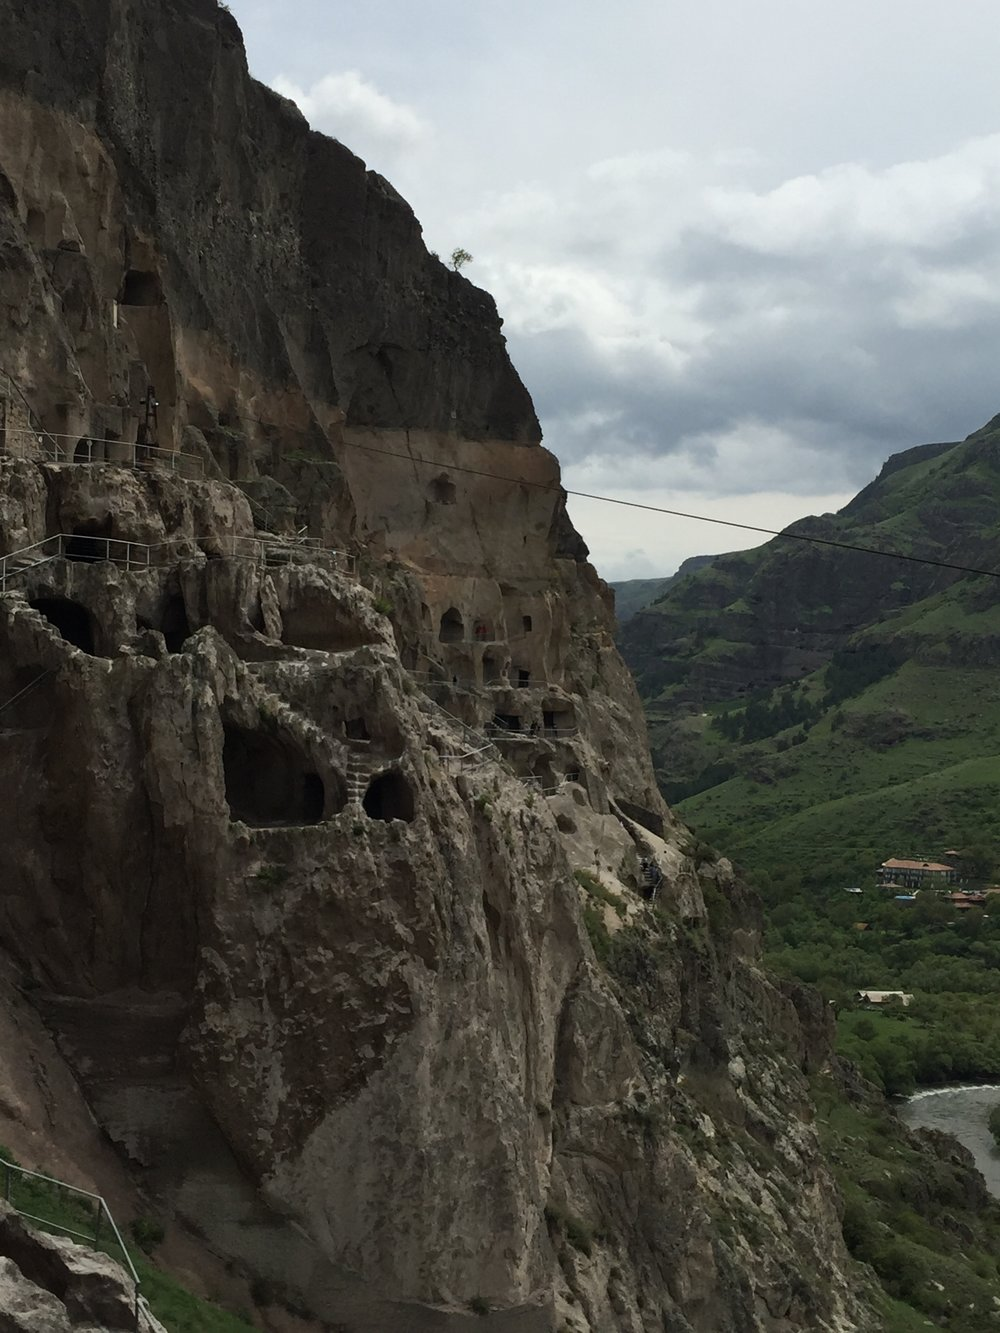 Outside view of Vardzia cave city